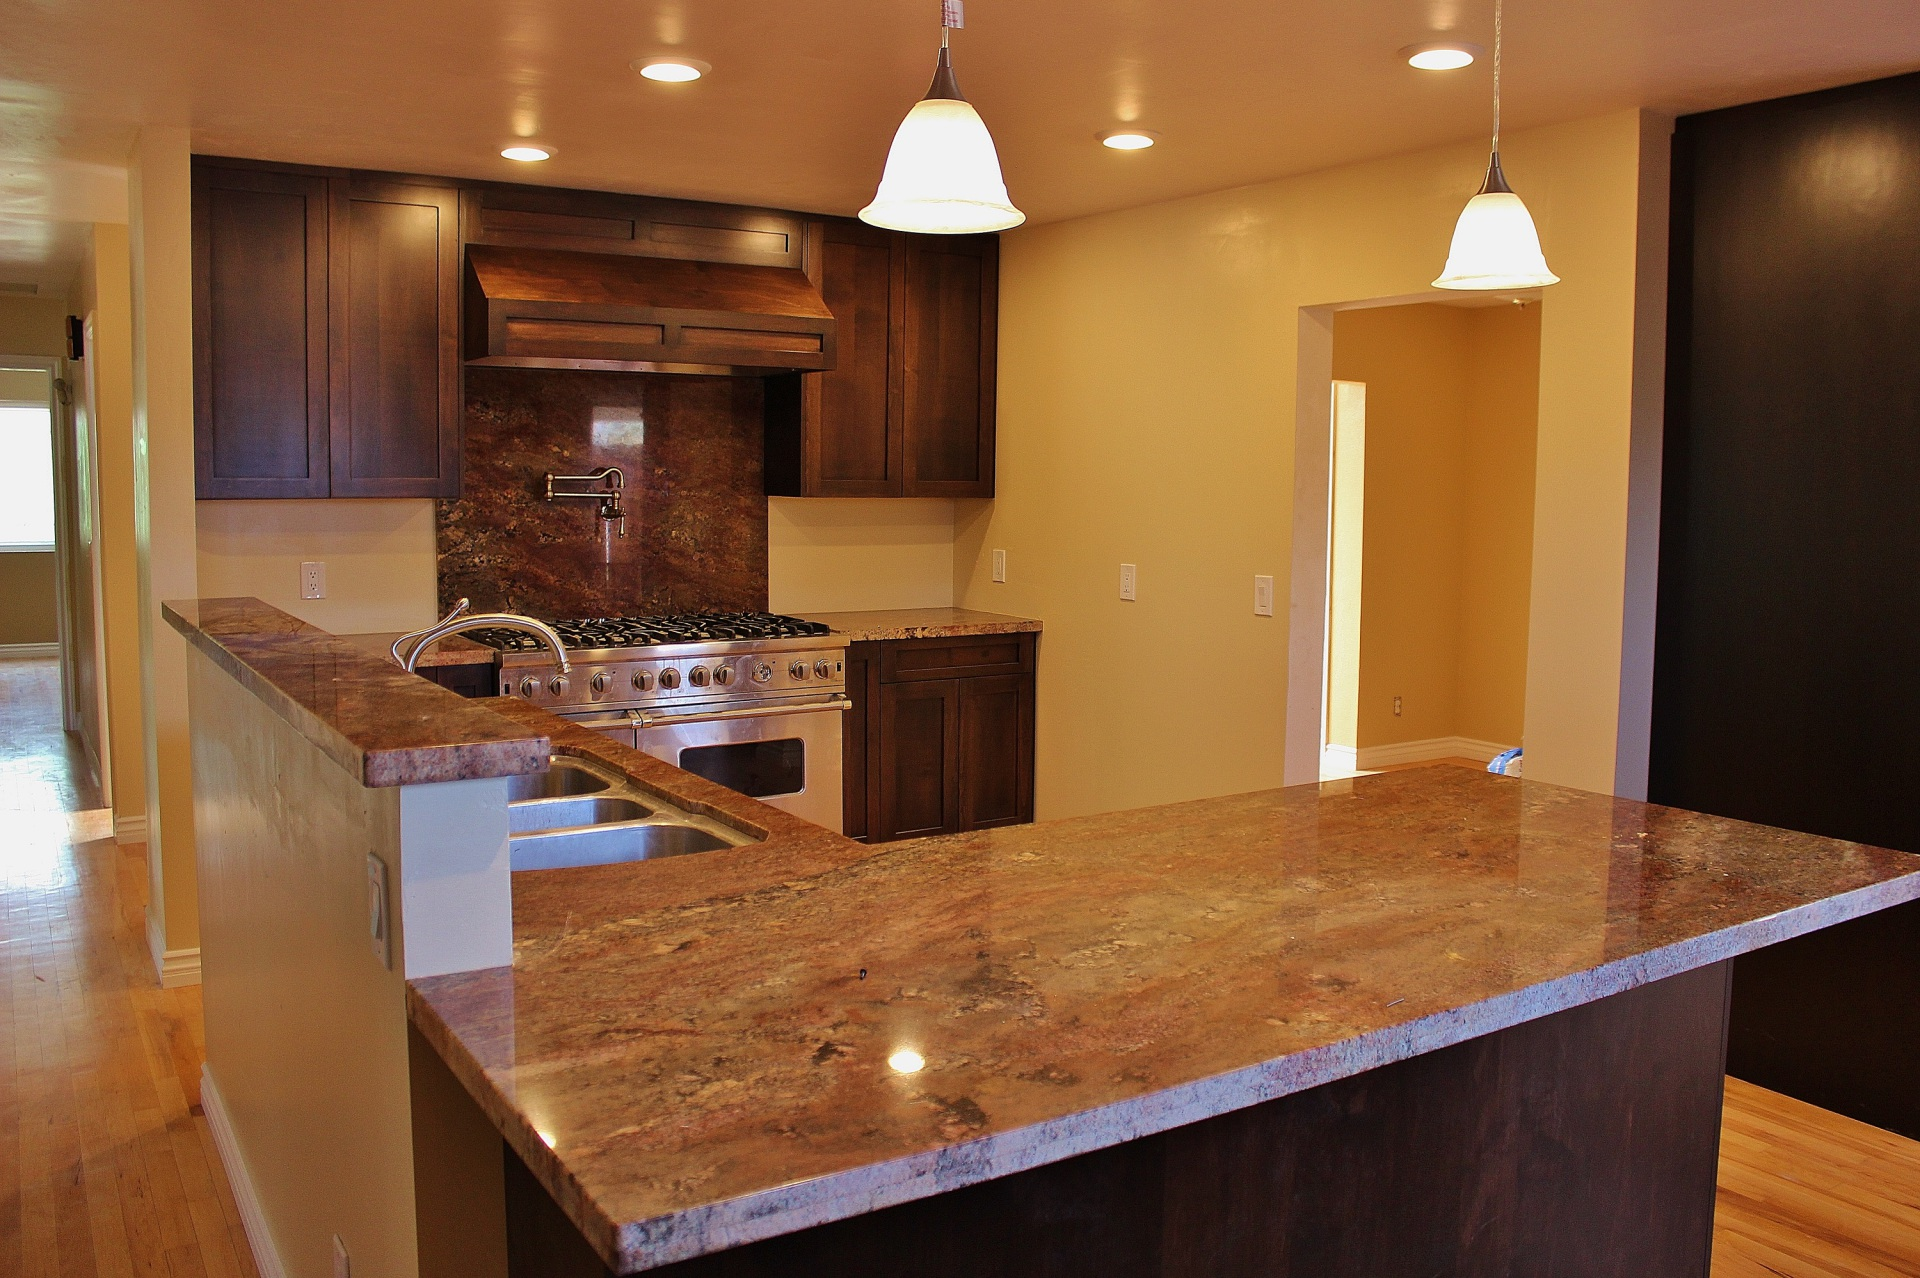 Kitchen Remodeling, Cabinetry, Counters Flooring Edgewood